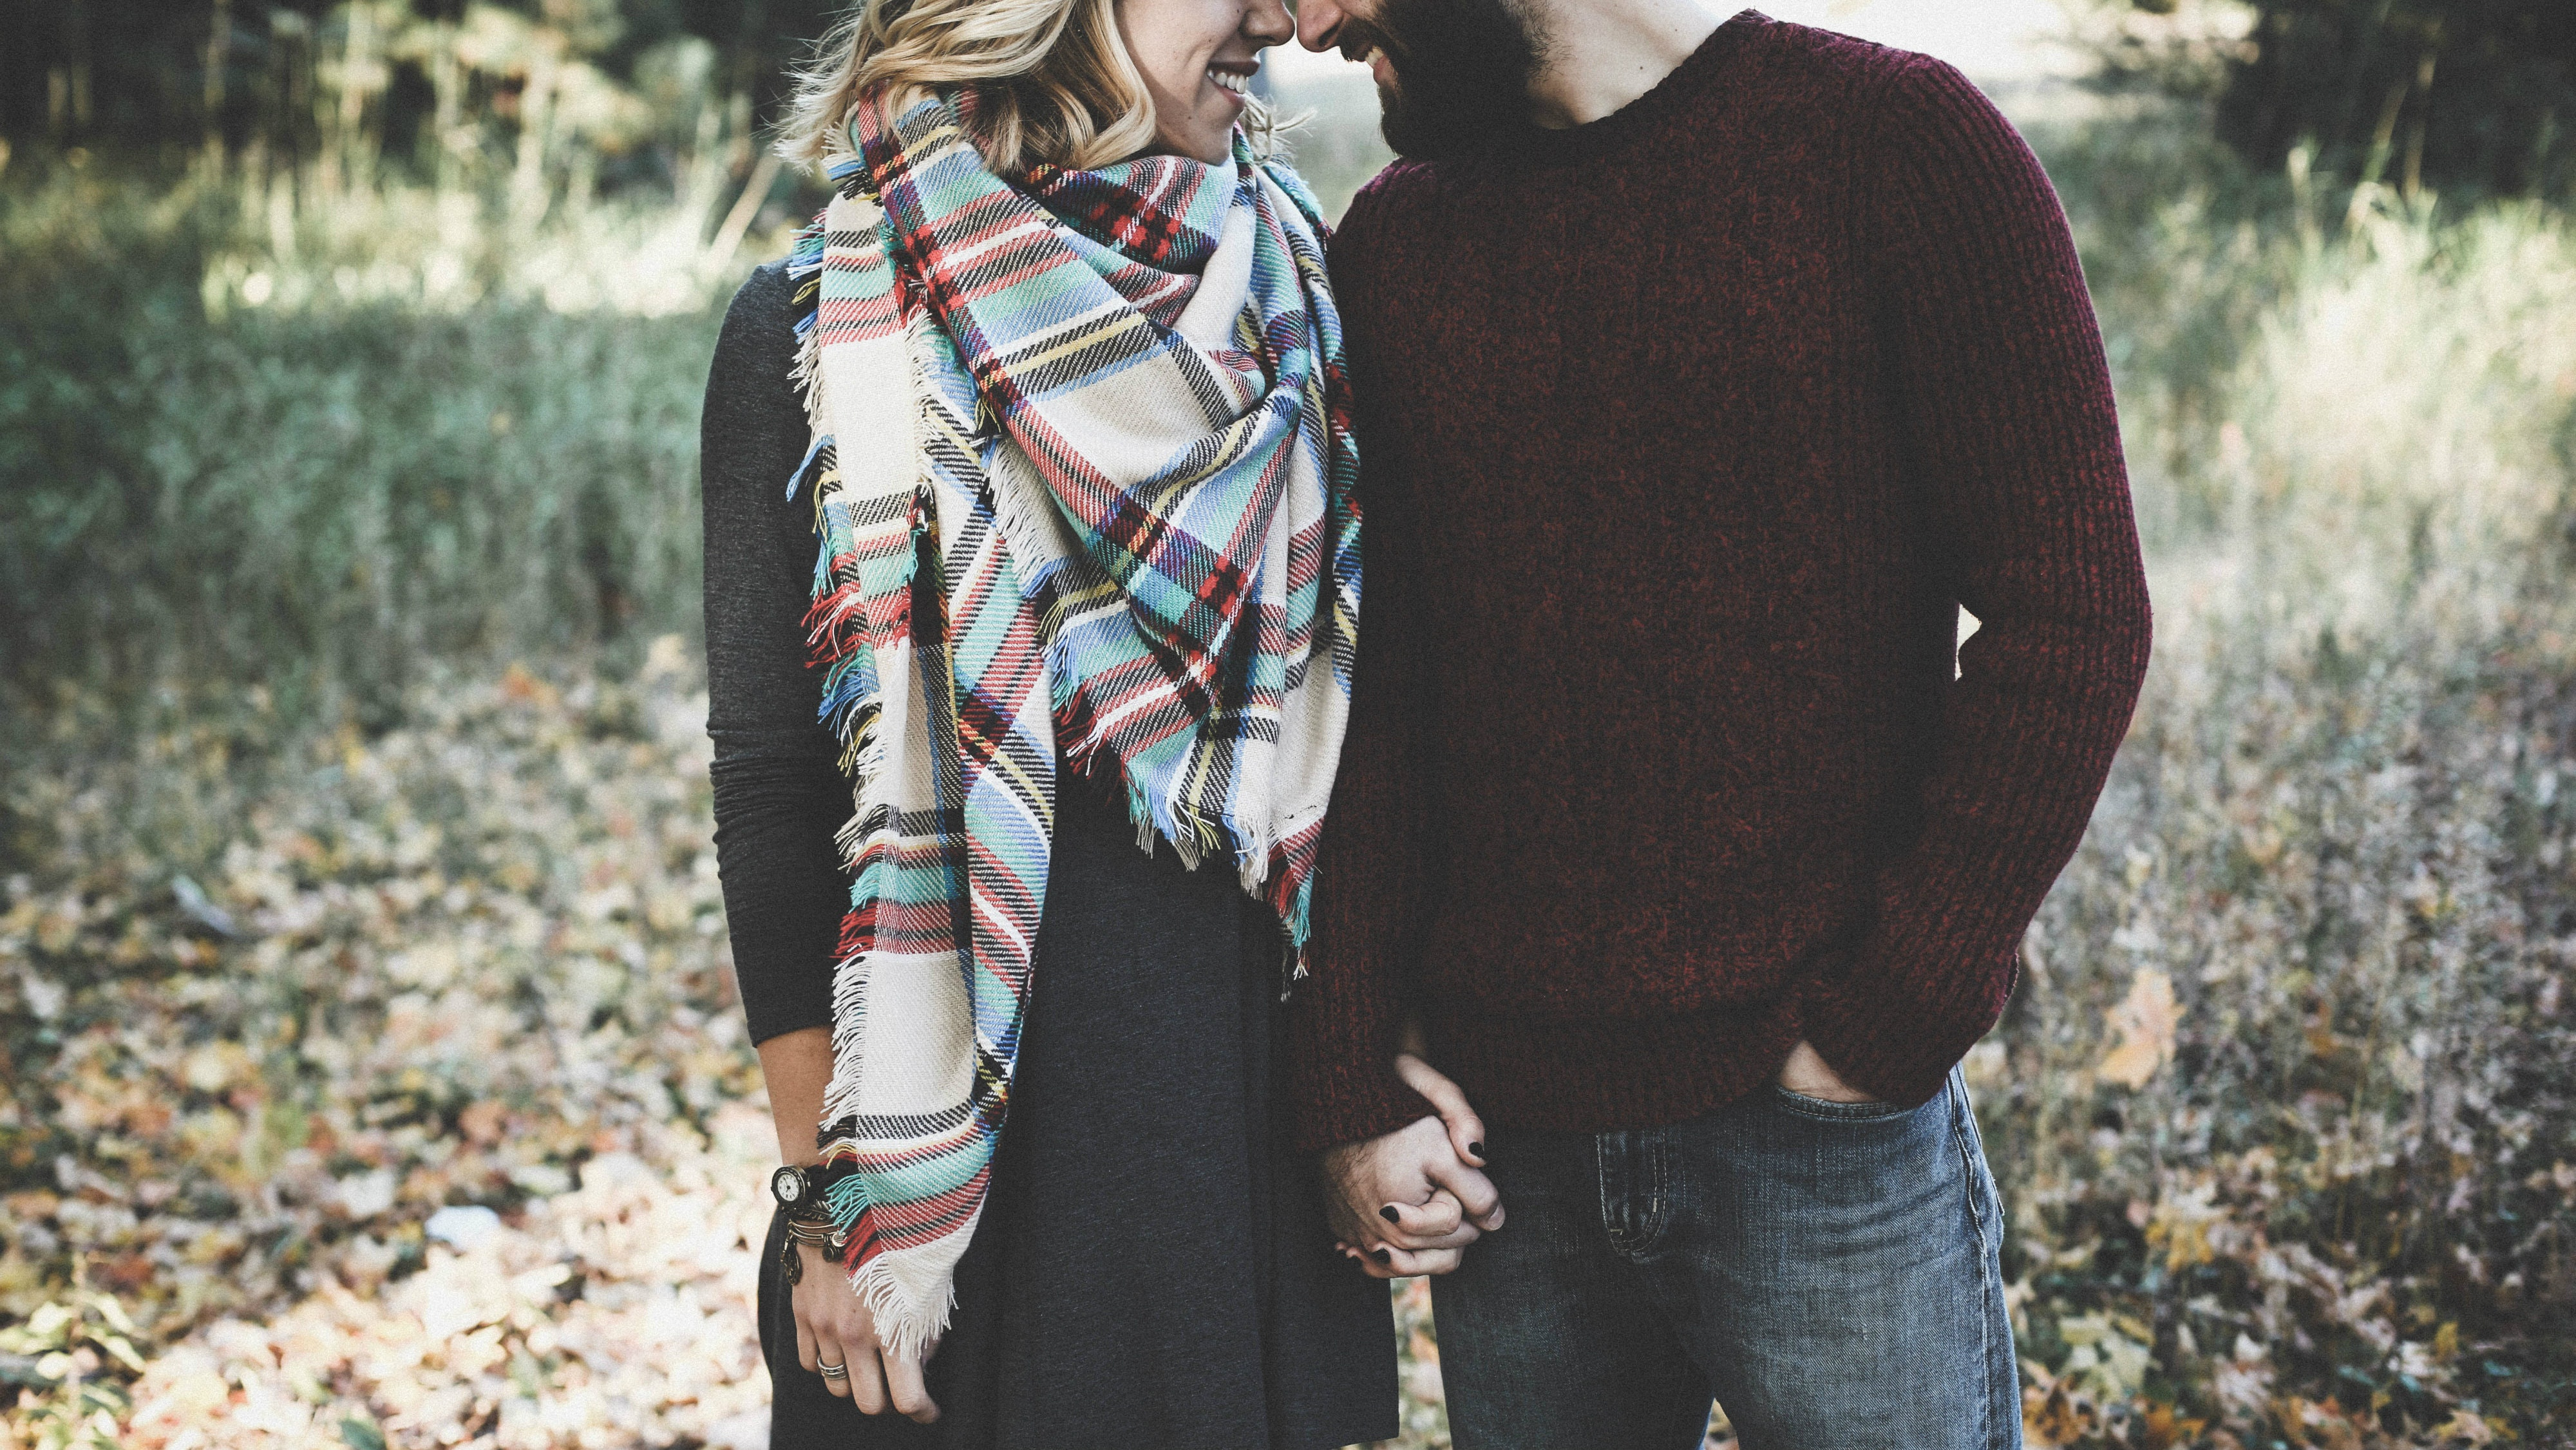 Christian advice on hookup and courtship